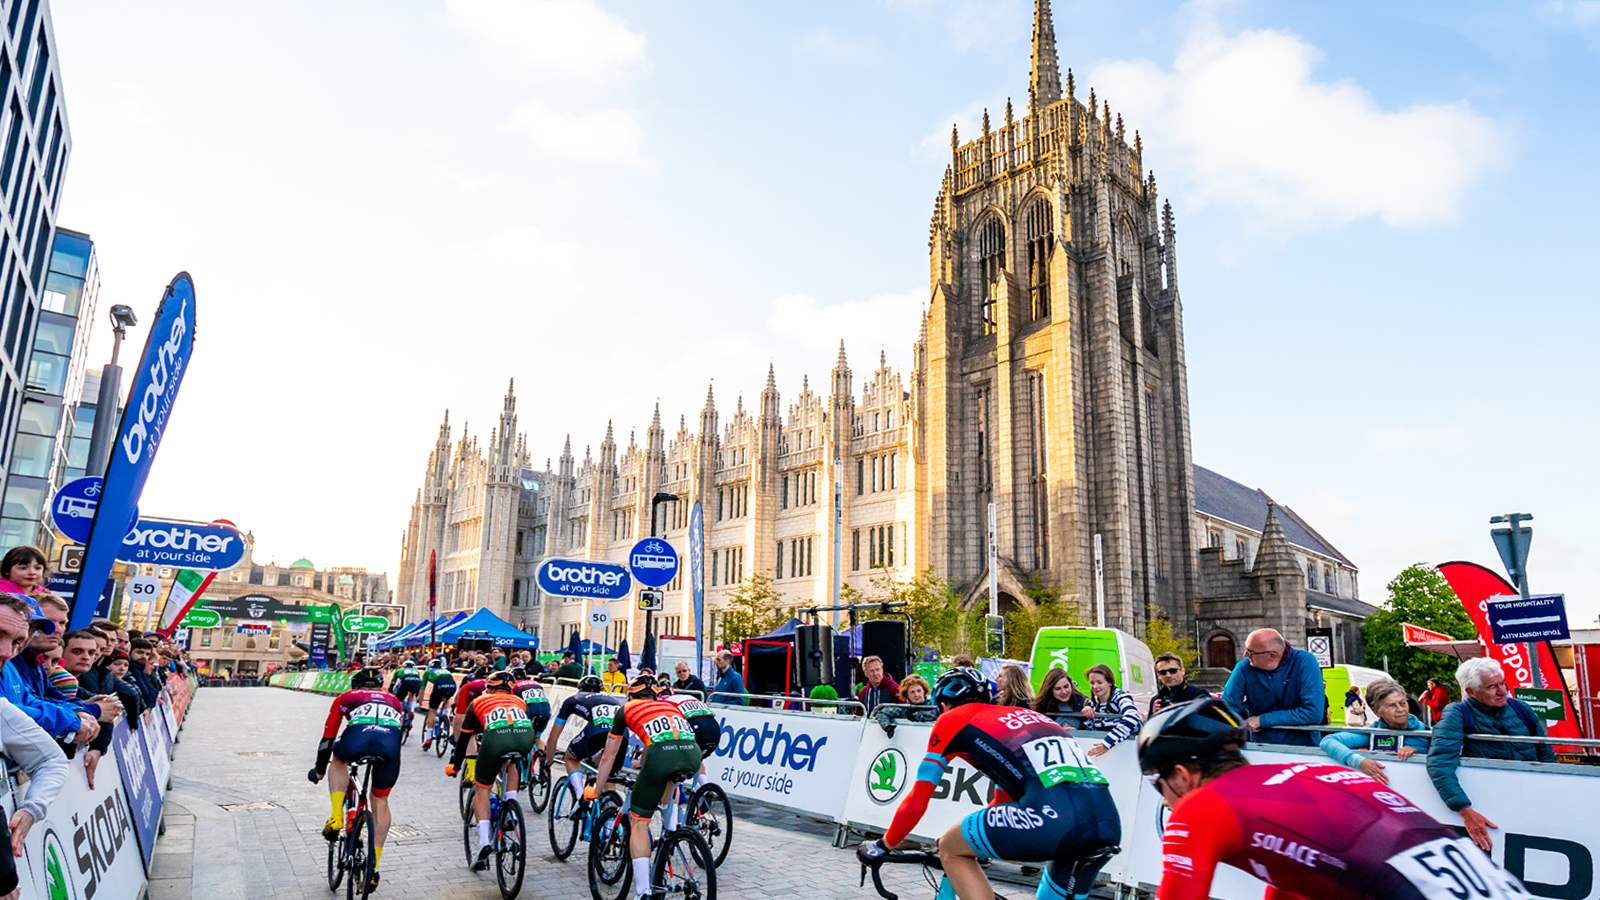 Aberdeen and Aberdeenshire announce two-year deal to host Tour of Britain - OVO Energy Tour of Britain